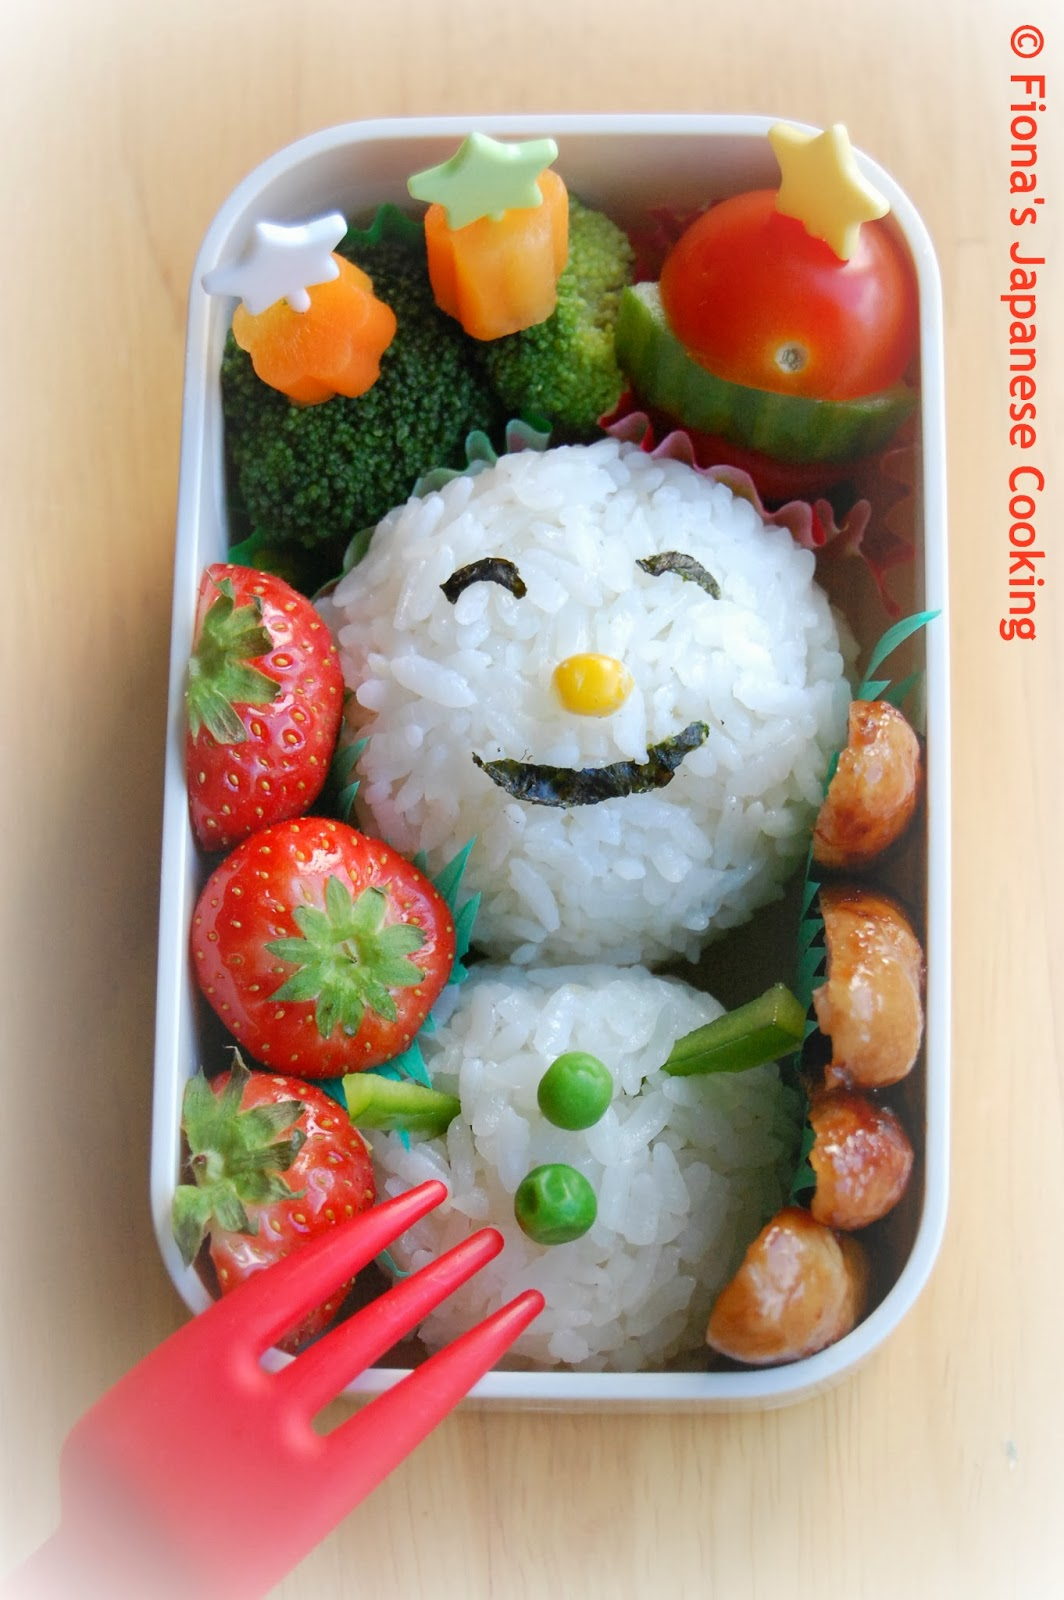 Fiona's Japanese Cooking Christmas Themed Bento Box Lunch. Bathroom Design Ideas Shower Curtains. Hair Color Ideas Virtual Makeover. Backyard Landscaping Ideas. Camping Dinner Ideas For Large Groups. Photoshoot Theme Ideas For Couples. Pics Of Kitchen Storage Ideas. Valentines Ideas Surprise. Ideas For Small Open Plan Kitchen And Lounge